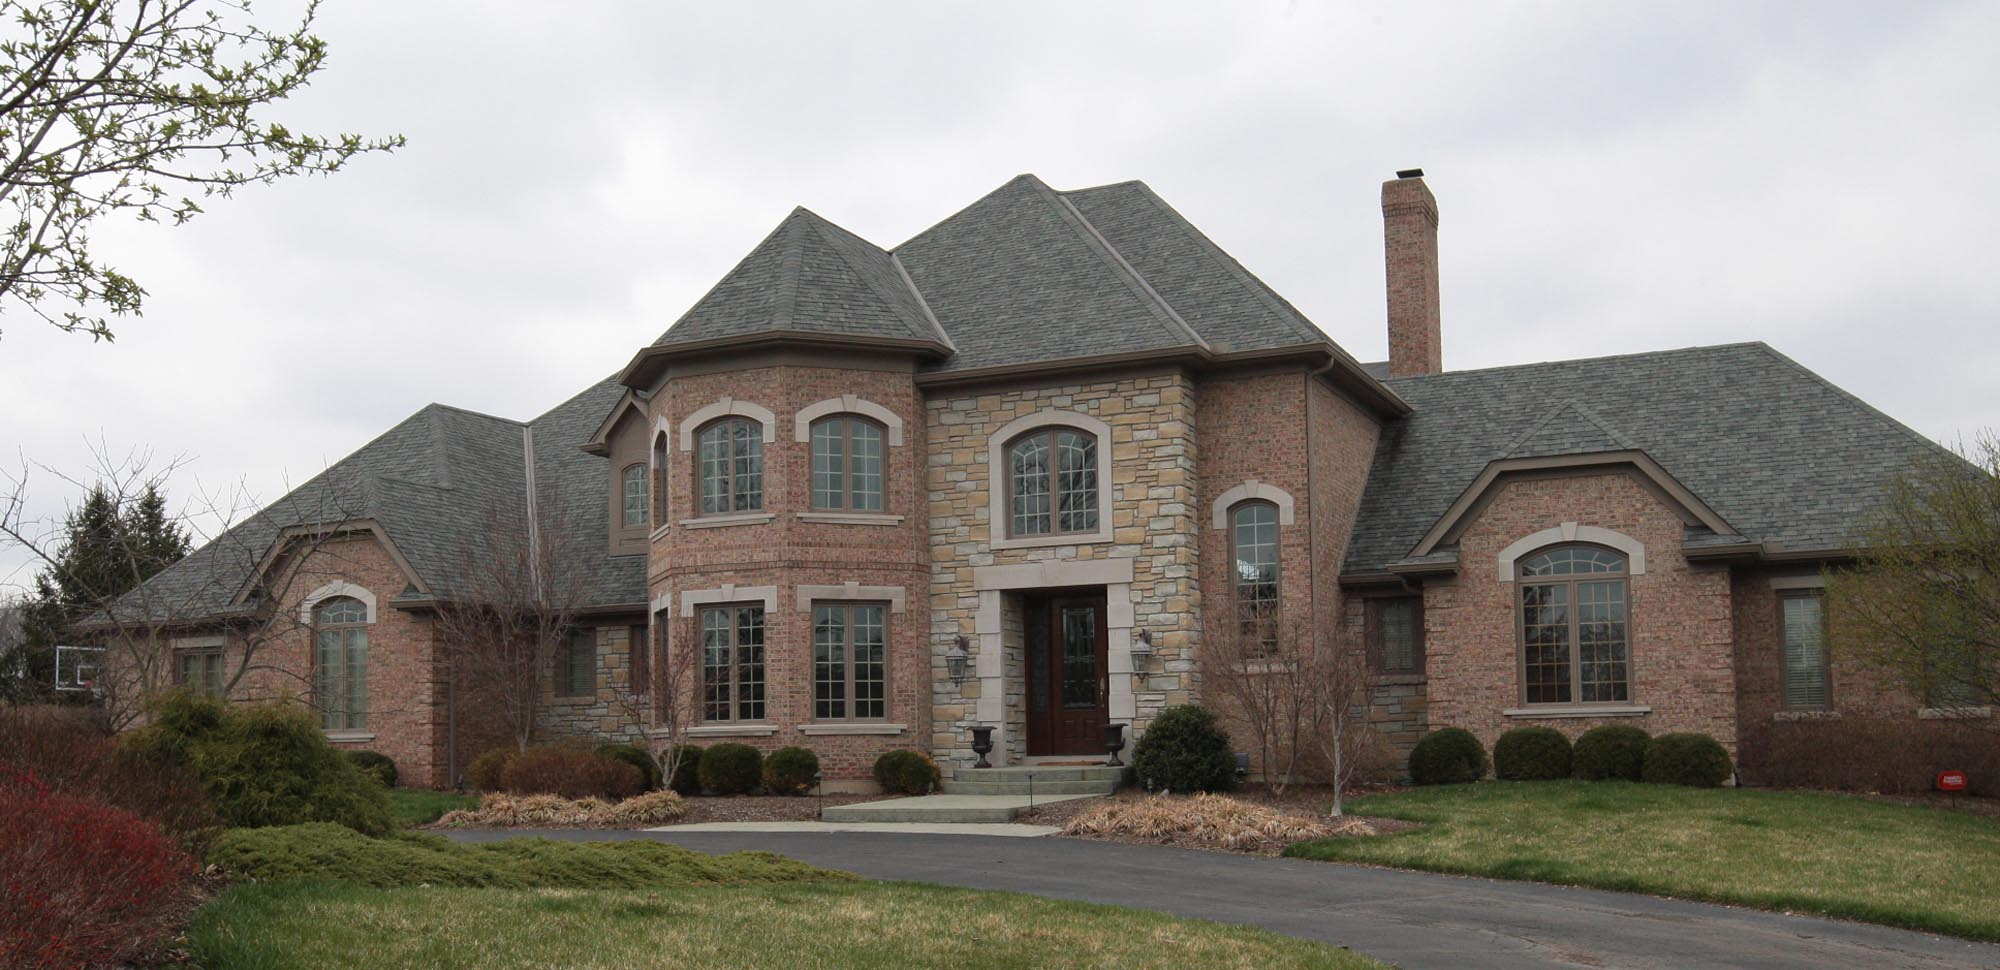 Fullsize Of Brett Favre House